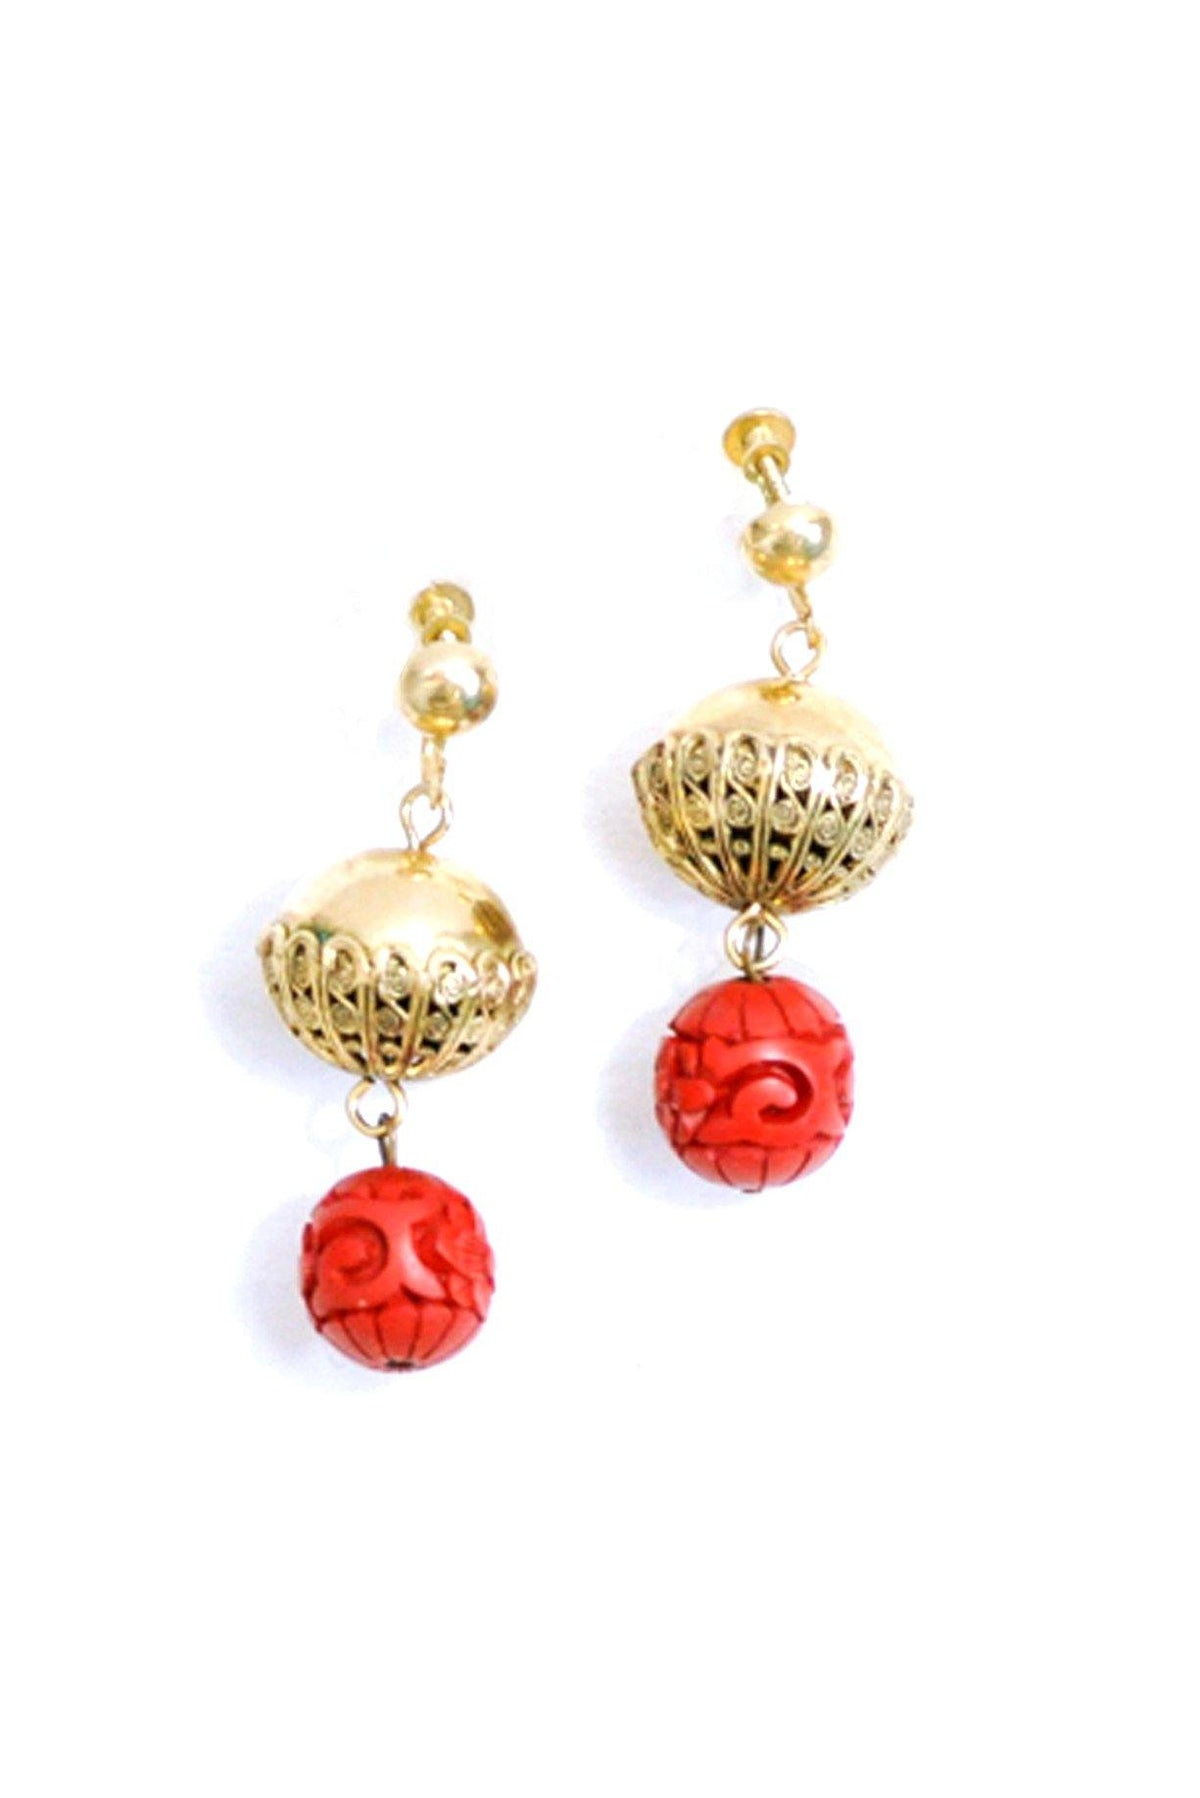 50's Vintage Ethnic-Inspired Drop Clip-On Earrings